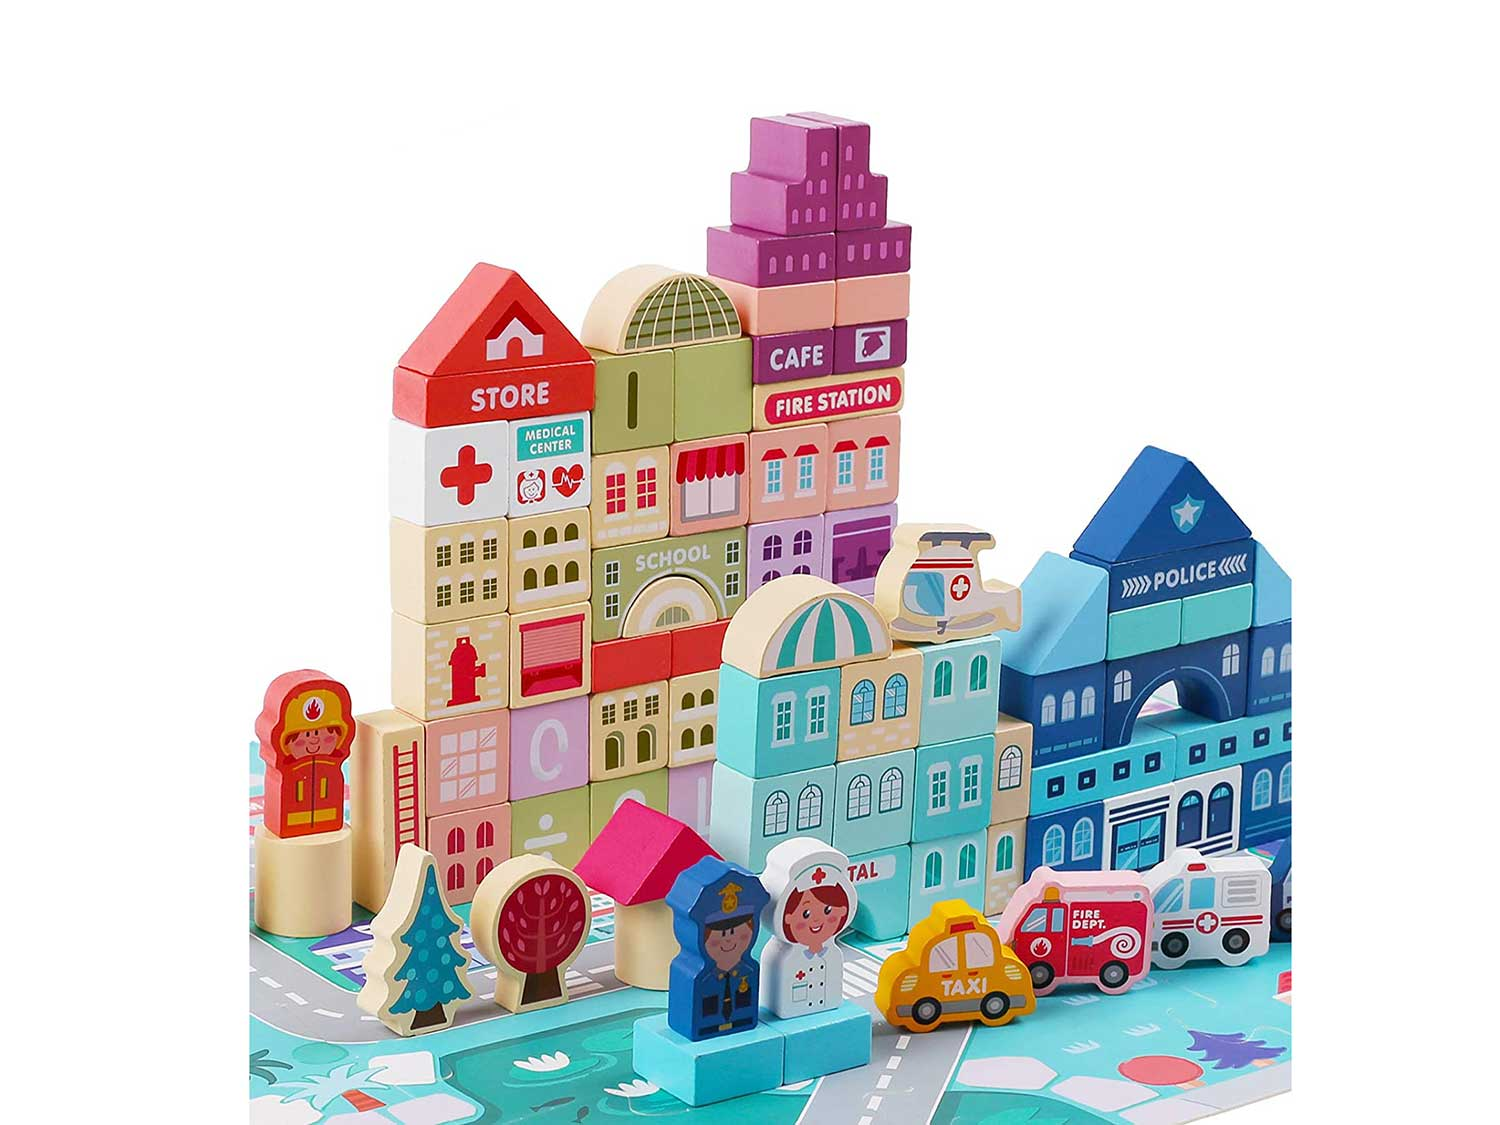 LENNYSTONE 120 Pcs Wooden Building Blocks Set for Toddlers, Creative City Construction Stacker Stacking Blocks with Play Mat, Preschool Learning Educational Toys for Kids Boys Girls Ages 3+ Year Old